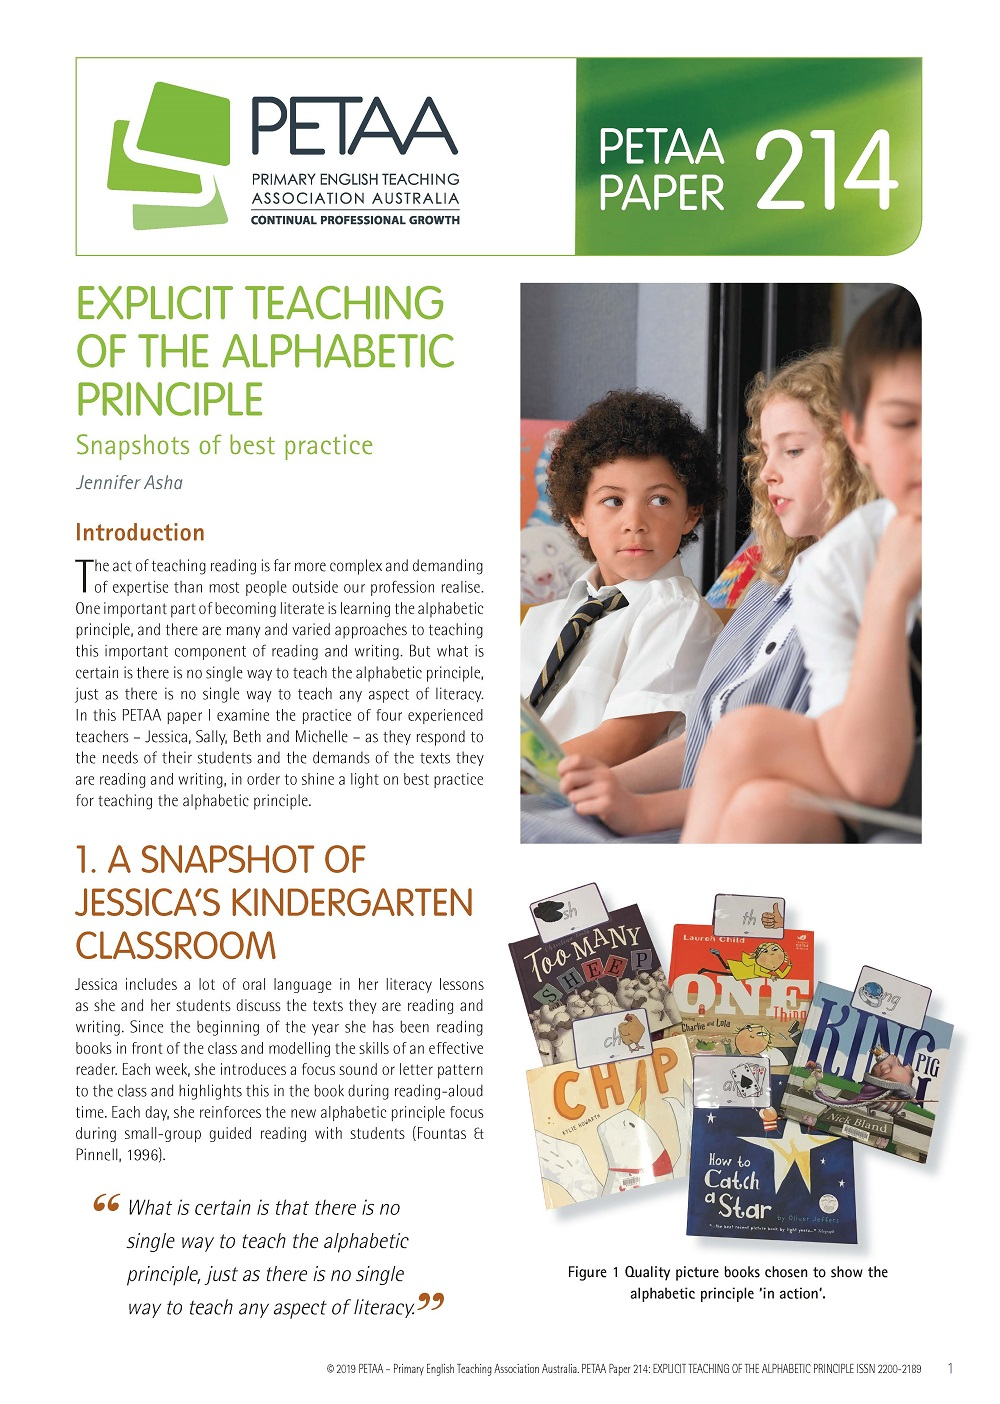 PP214:Explicit teaching of the alphabetic principle